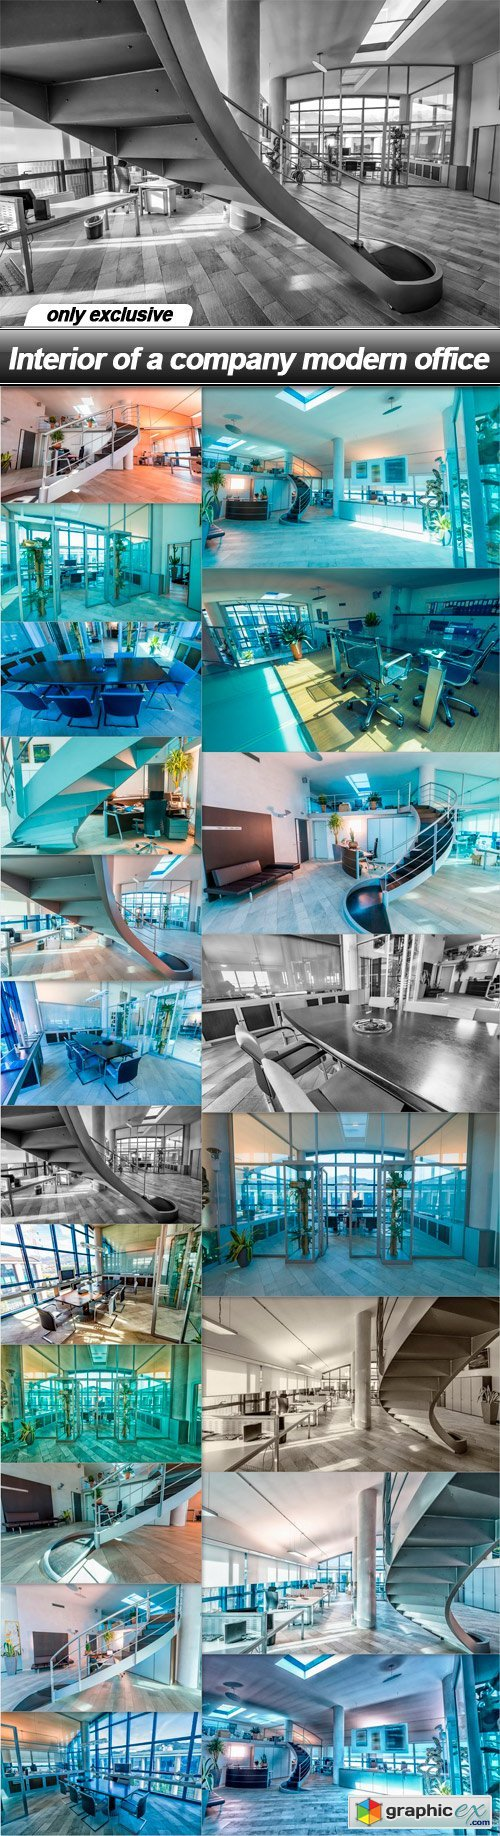 Interior of a company modern office - 20 UHQ JPEG